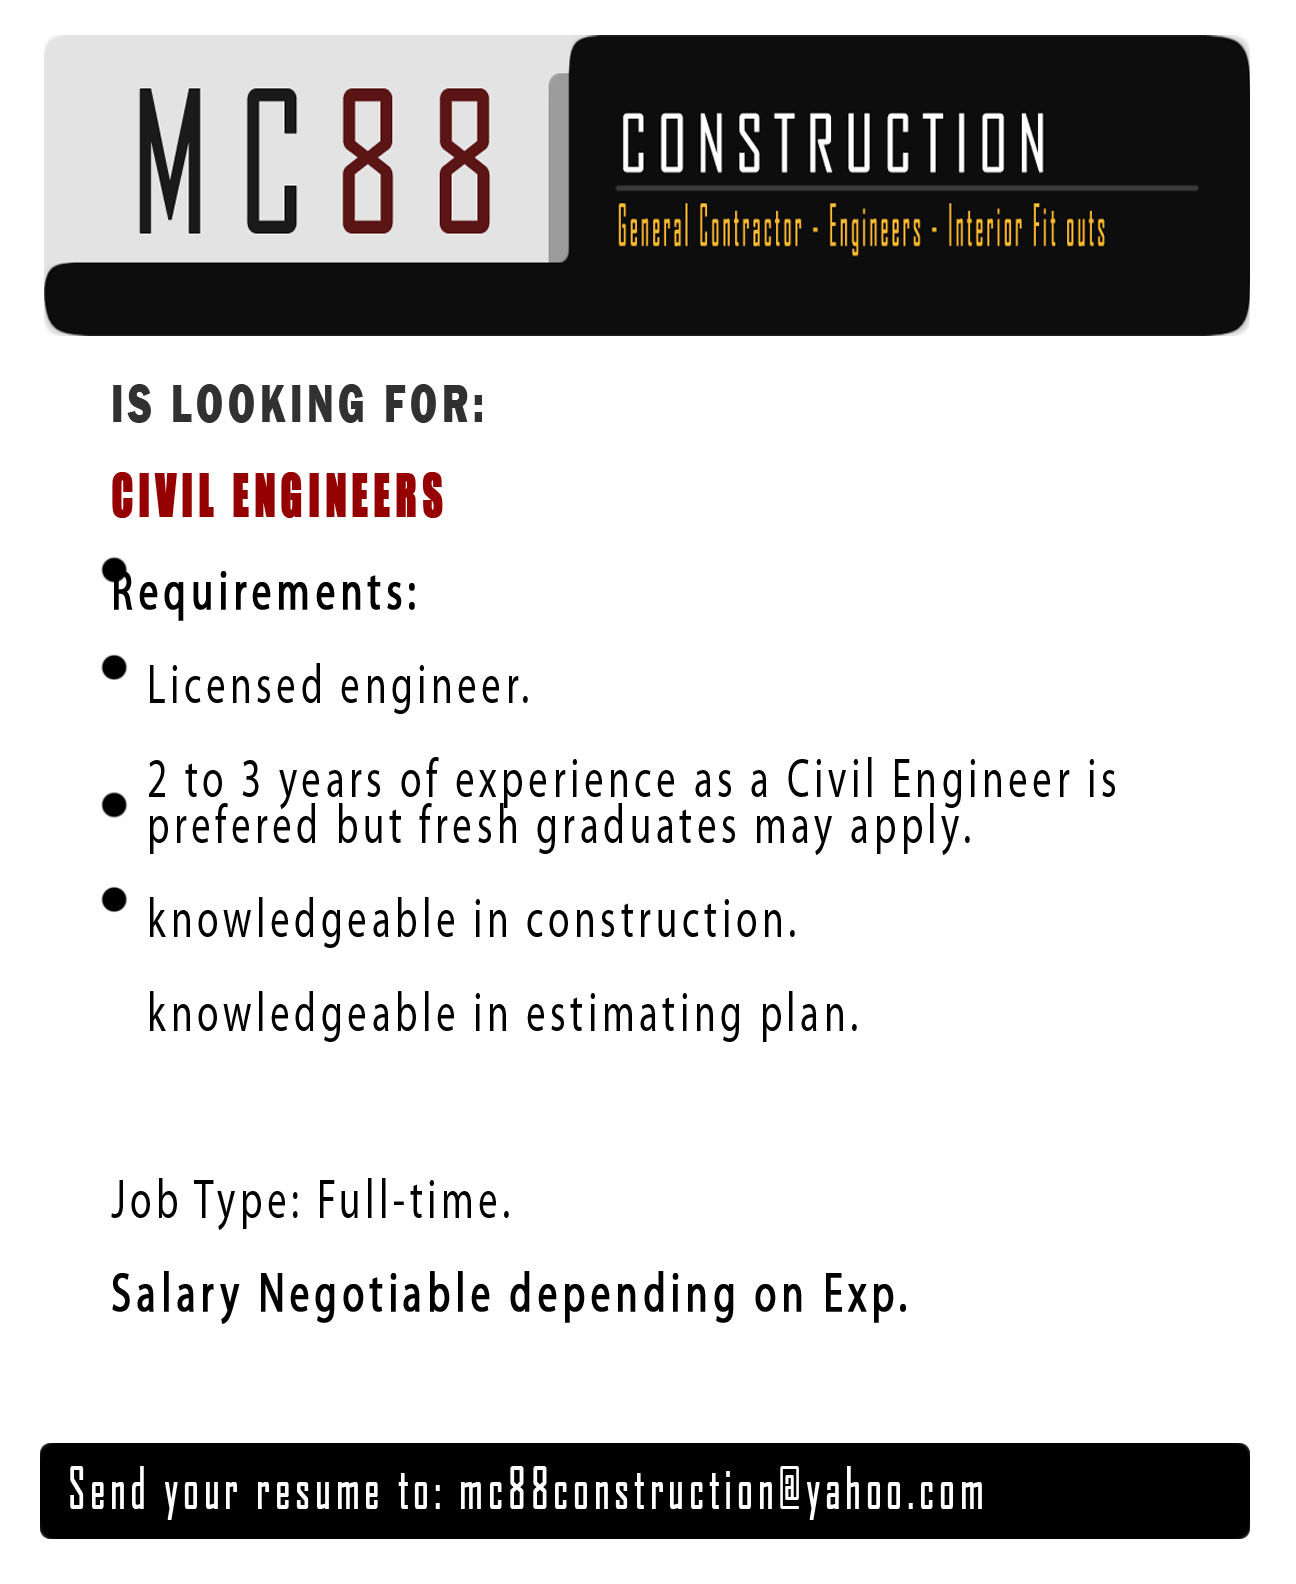 MC88 Construction from Quezon City is Looking for a Civil Engineer